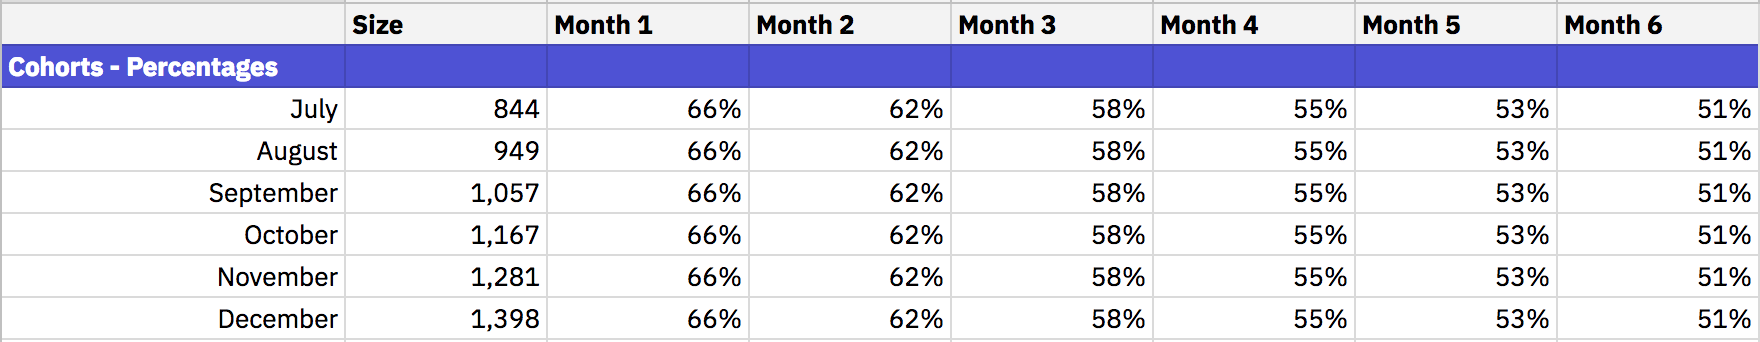 retention growth model example